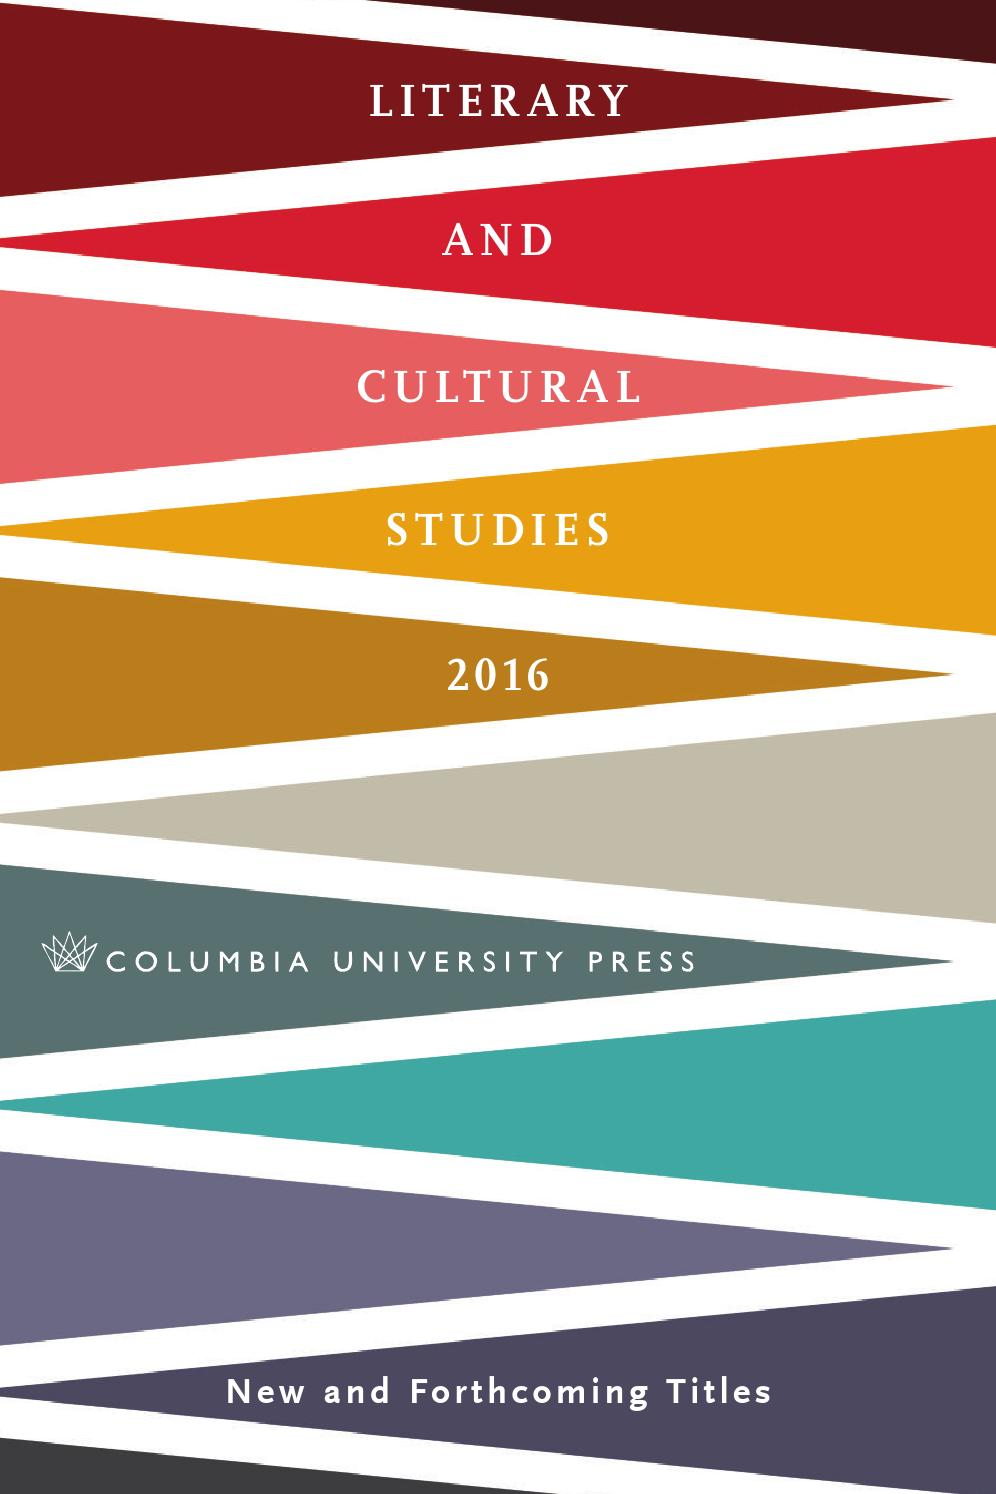 2016 Columbia UP Literary and Cultural Studies Catalog by Columbia  University Press - issuu